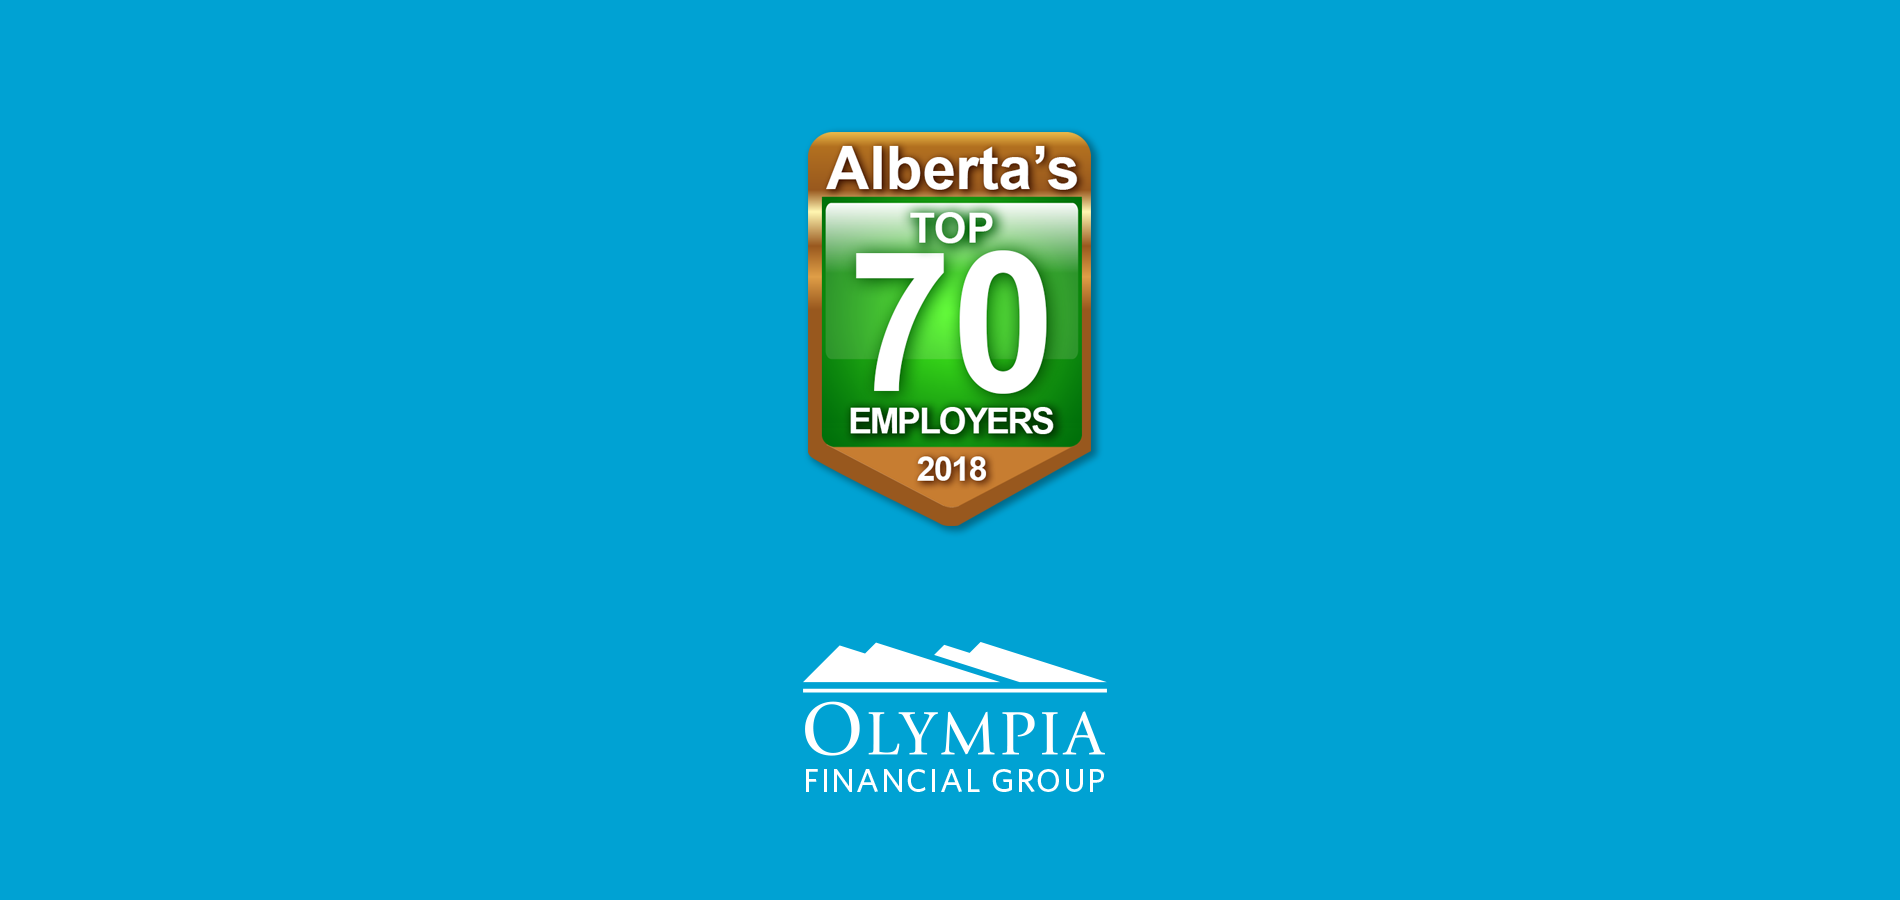 Alberta top 70 employers 2018